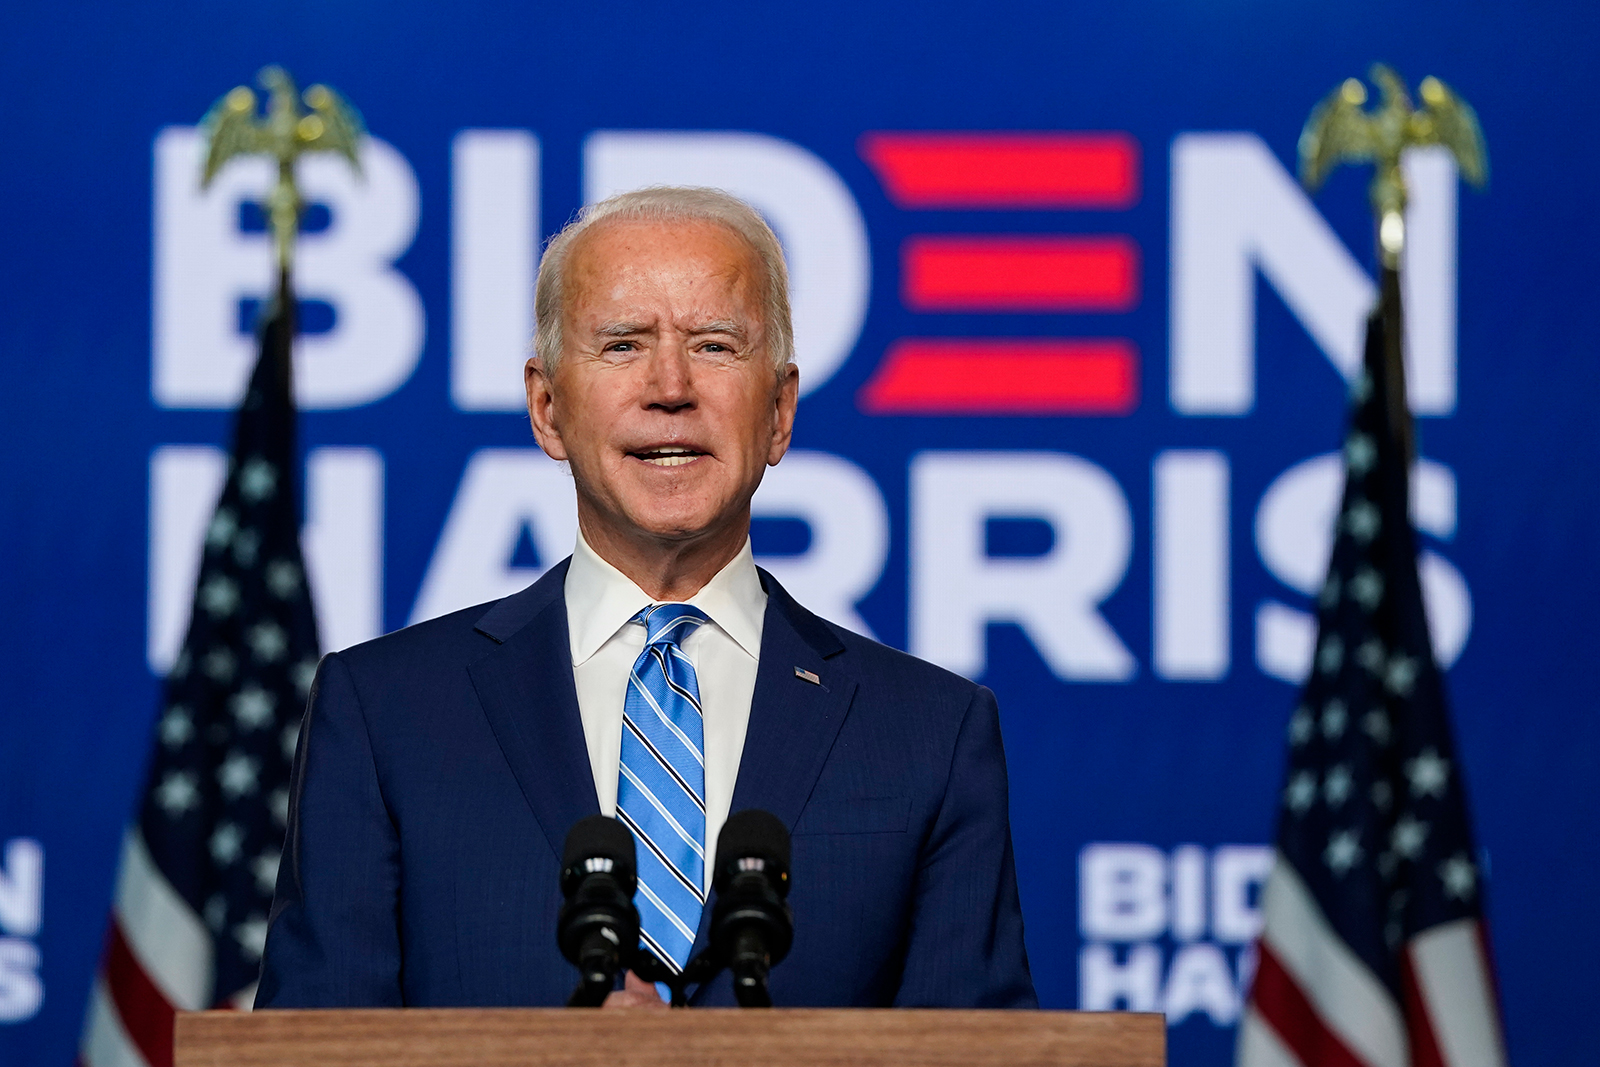 Democratic presidential nominee Joe Biden speaks one day after Americans voted in the presidential election, in Wilmington, Delaware, on November 04.